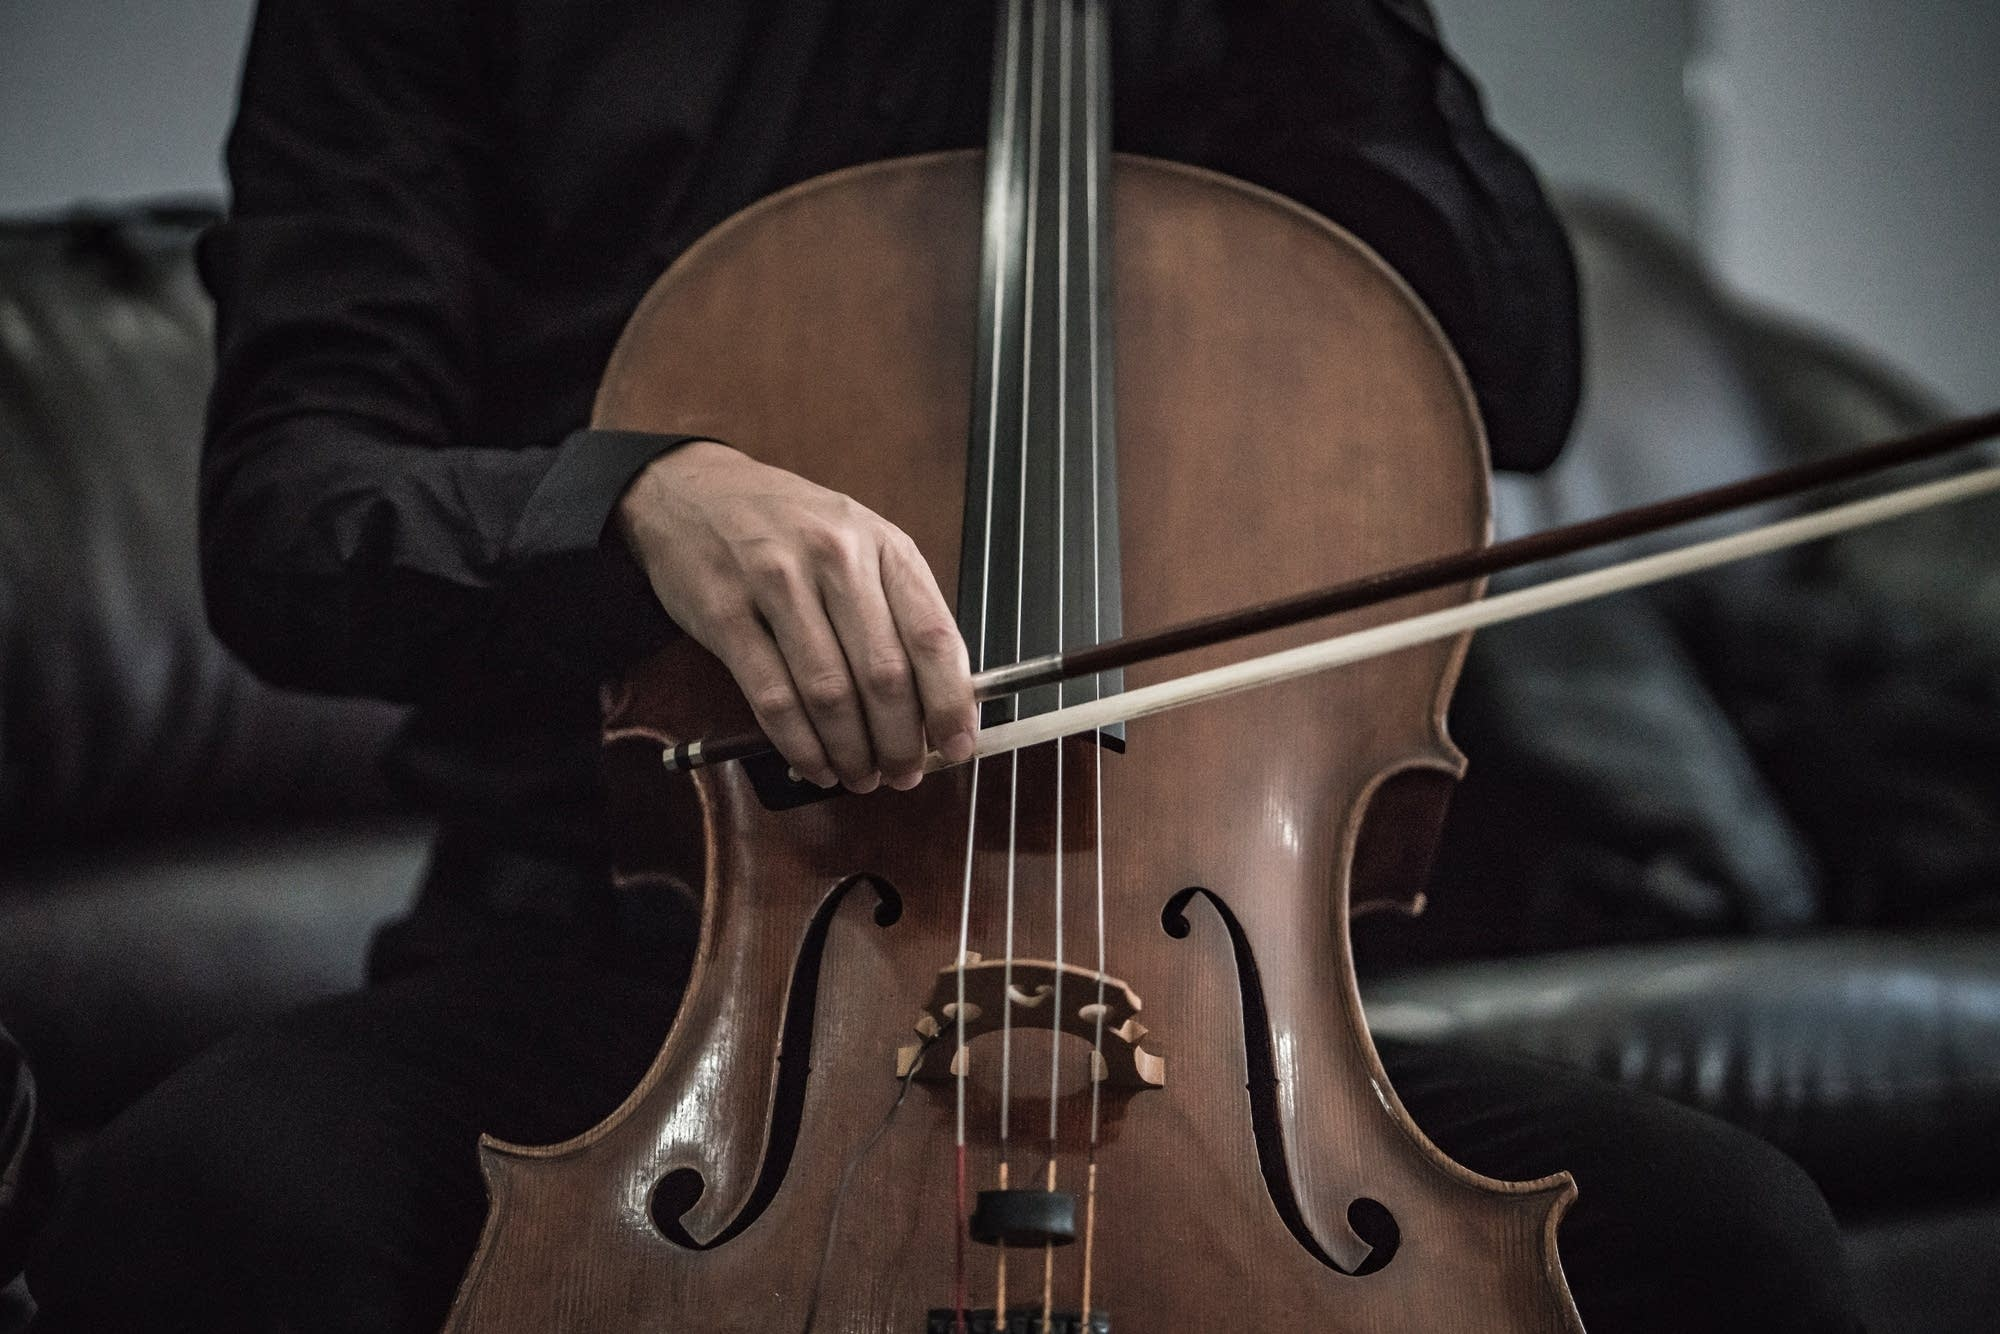 The cello is part of the string instrument family.